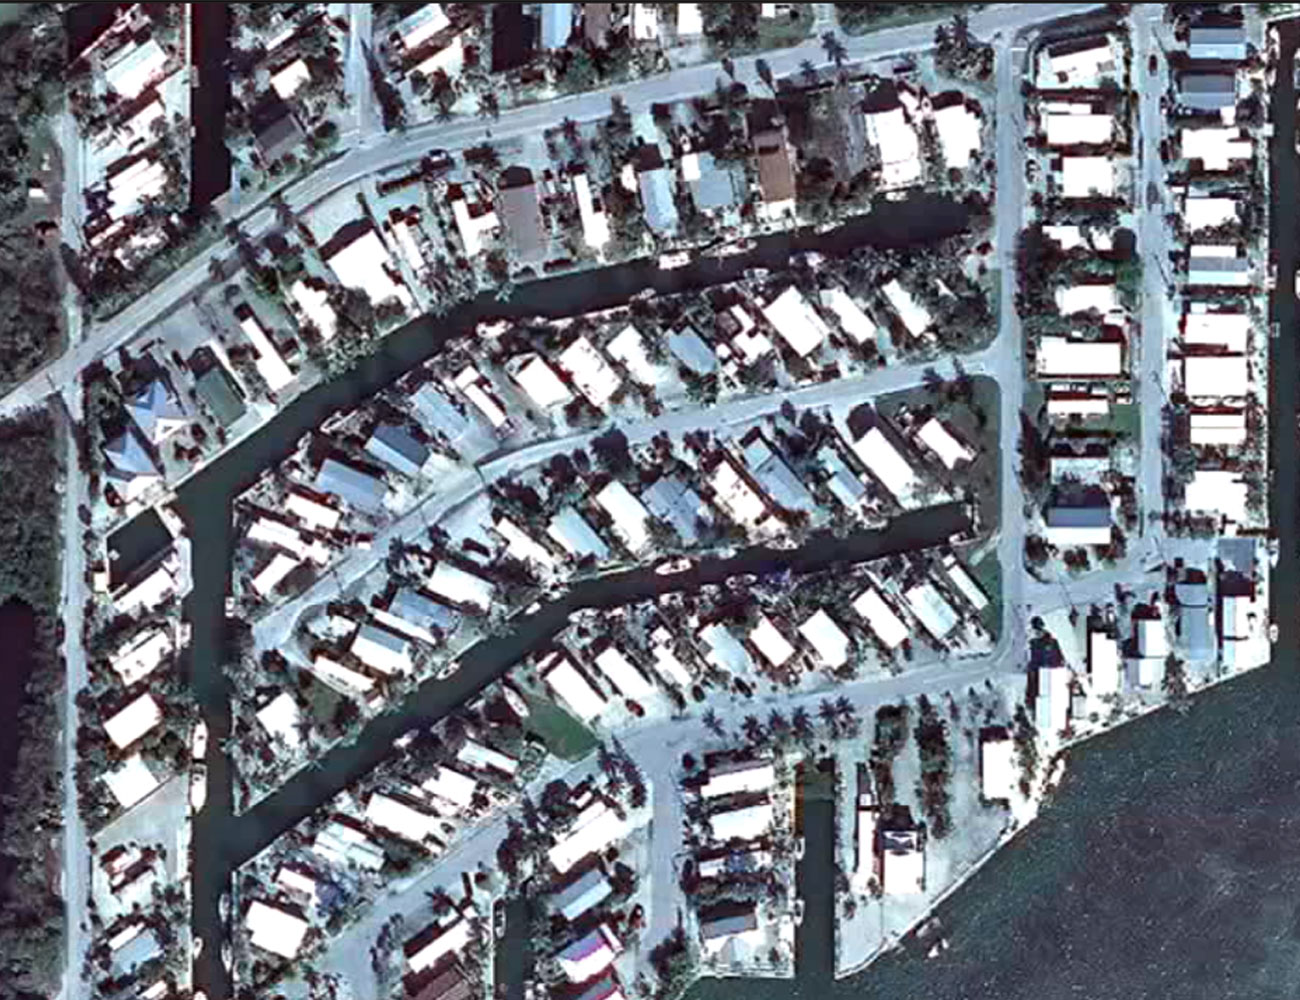 <div class='meta'><div class='origin-logo' data-origin='none'></div><span class='caption-text' data-credit='DigitalGlobe'>Ginger Key, Florida - January 16, 2017</span></div>